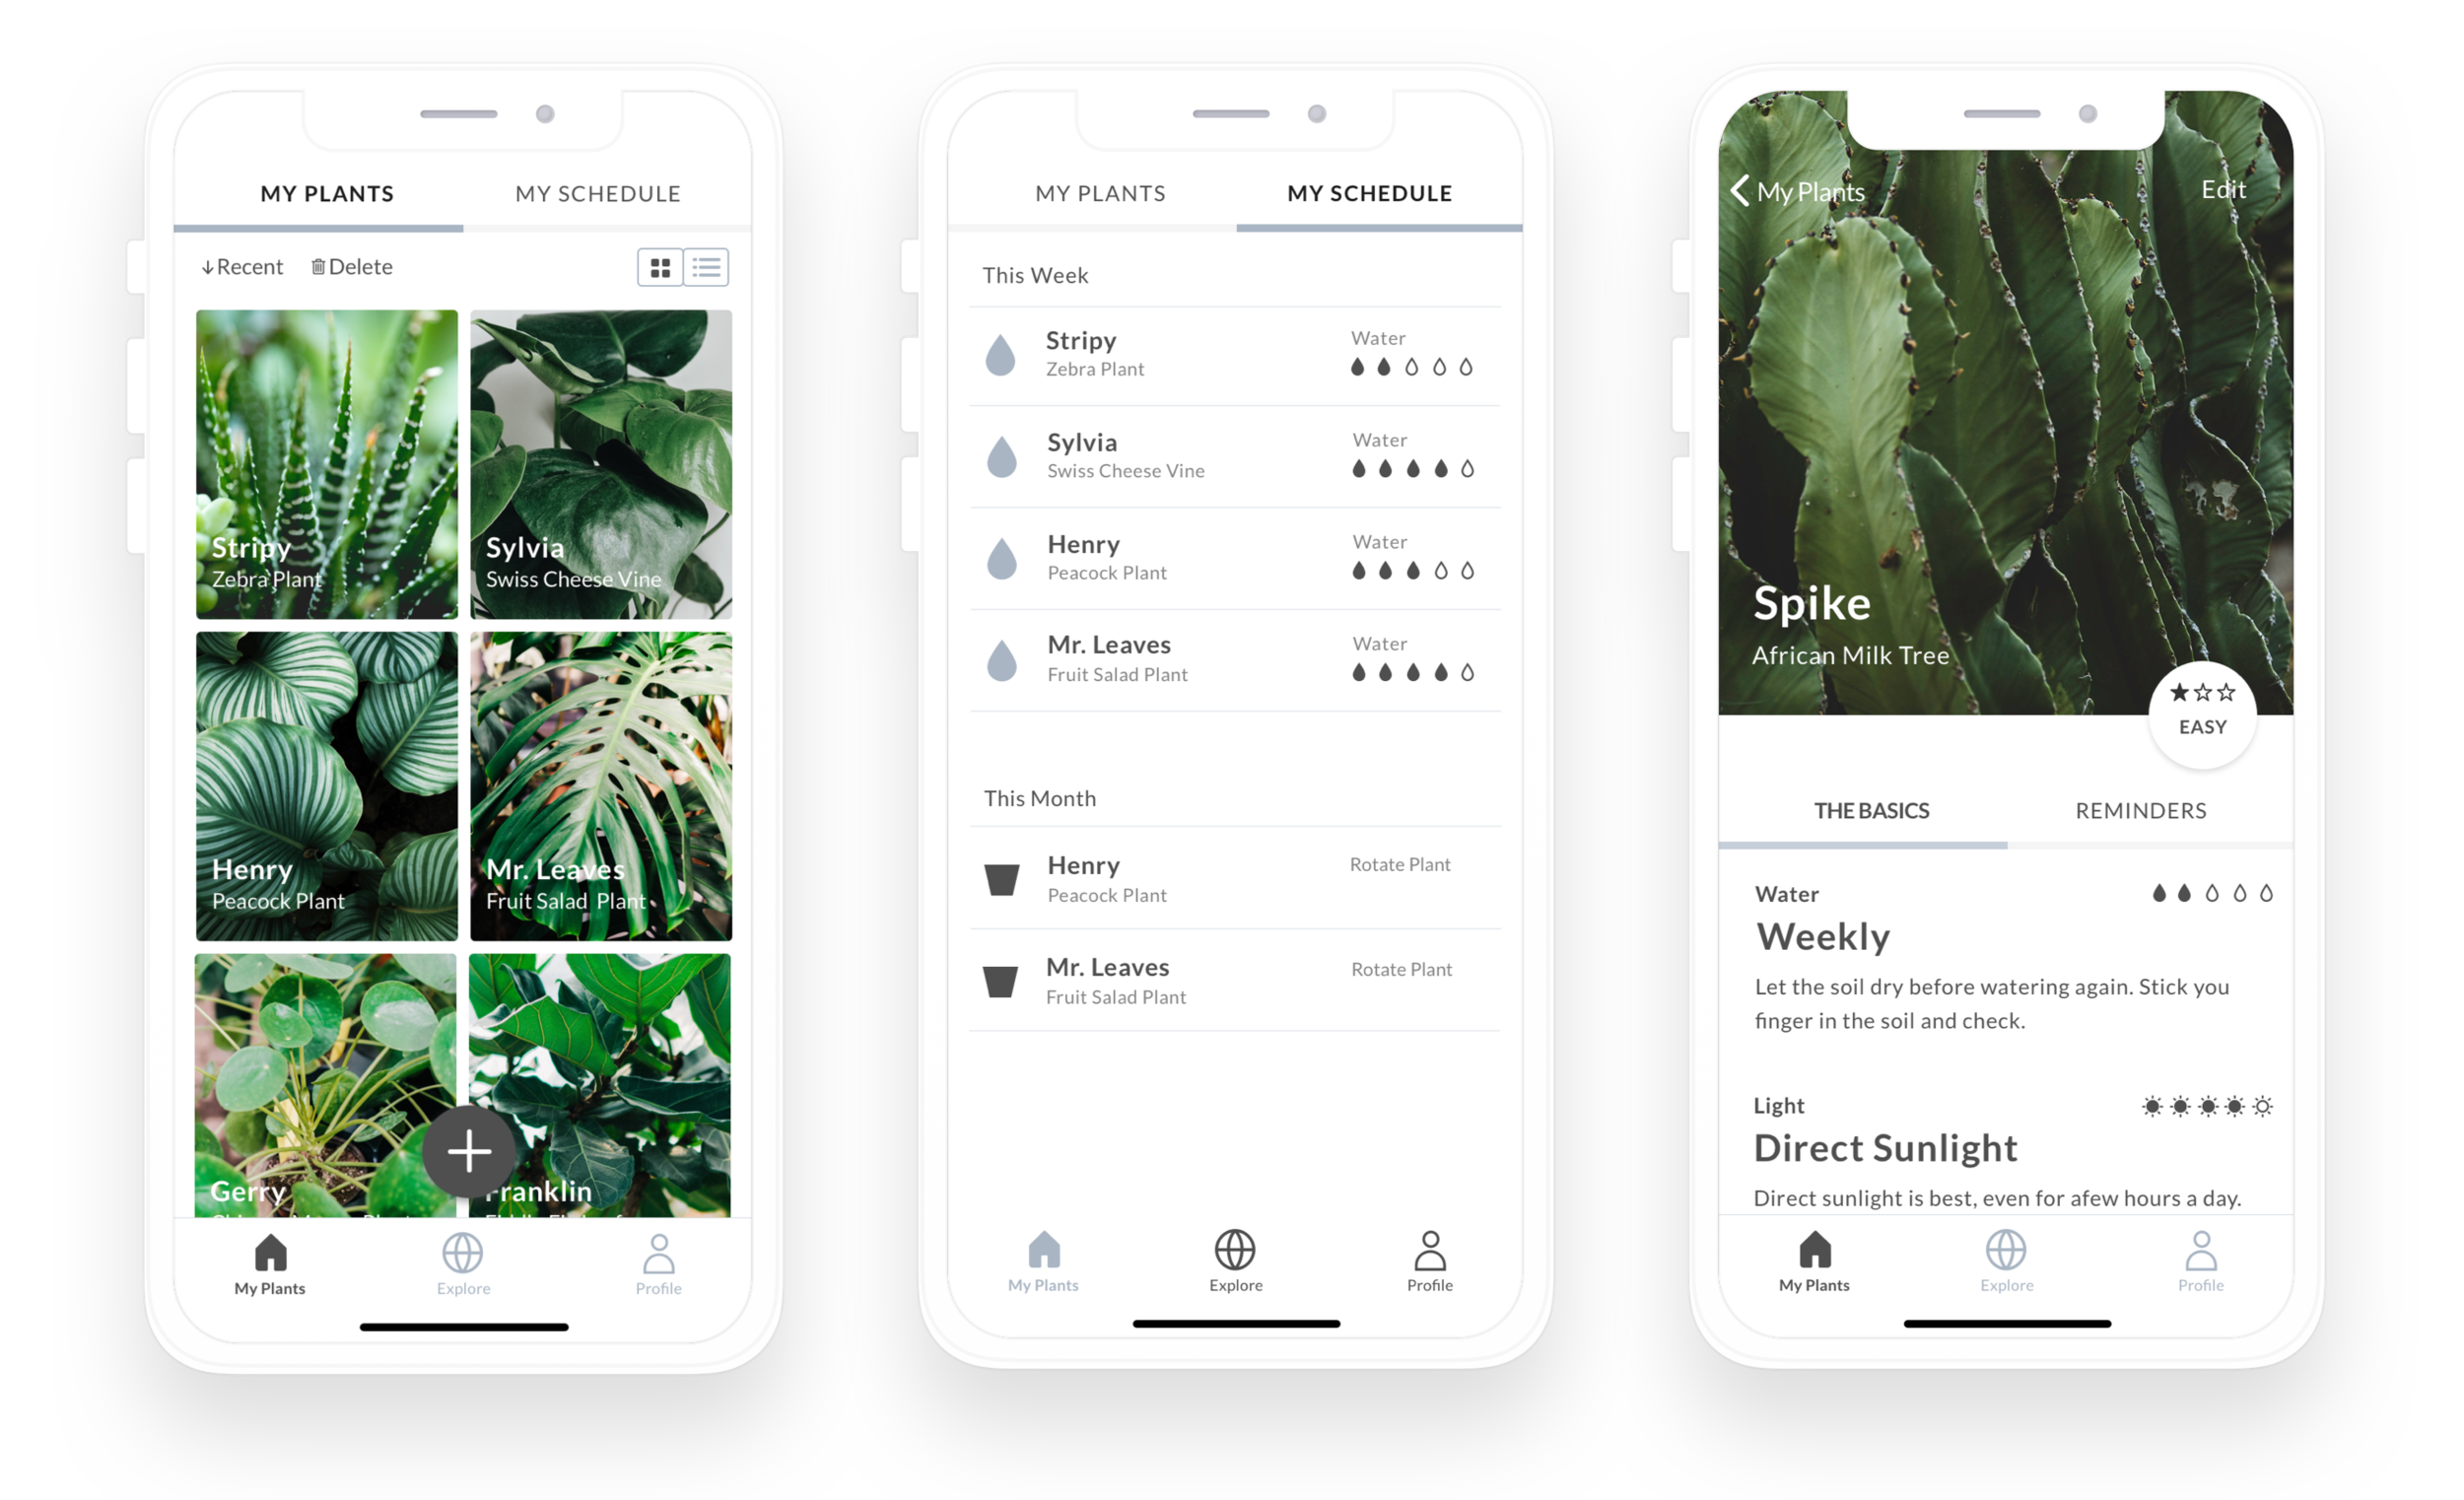 Urban Botanist allows the user to track their plant collection, scheduling routine care and access to plant information.